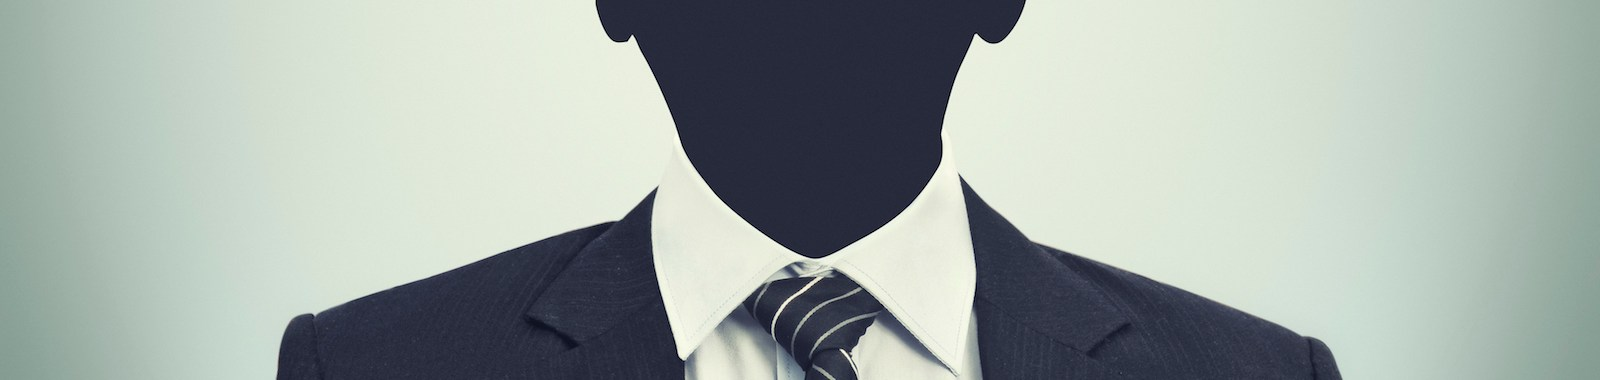 An unkhown person in business suit